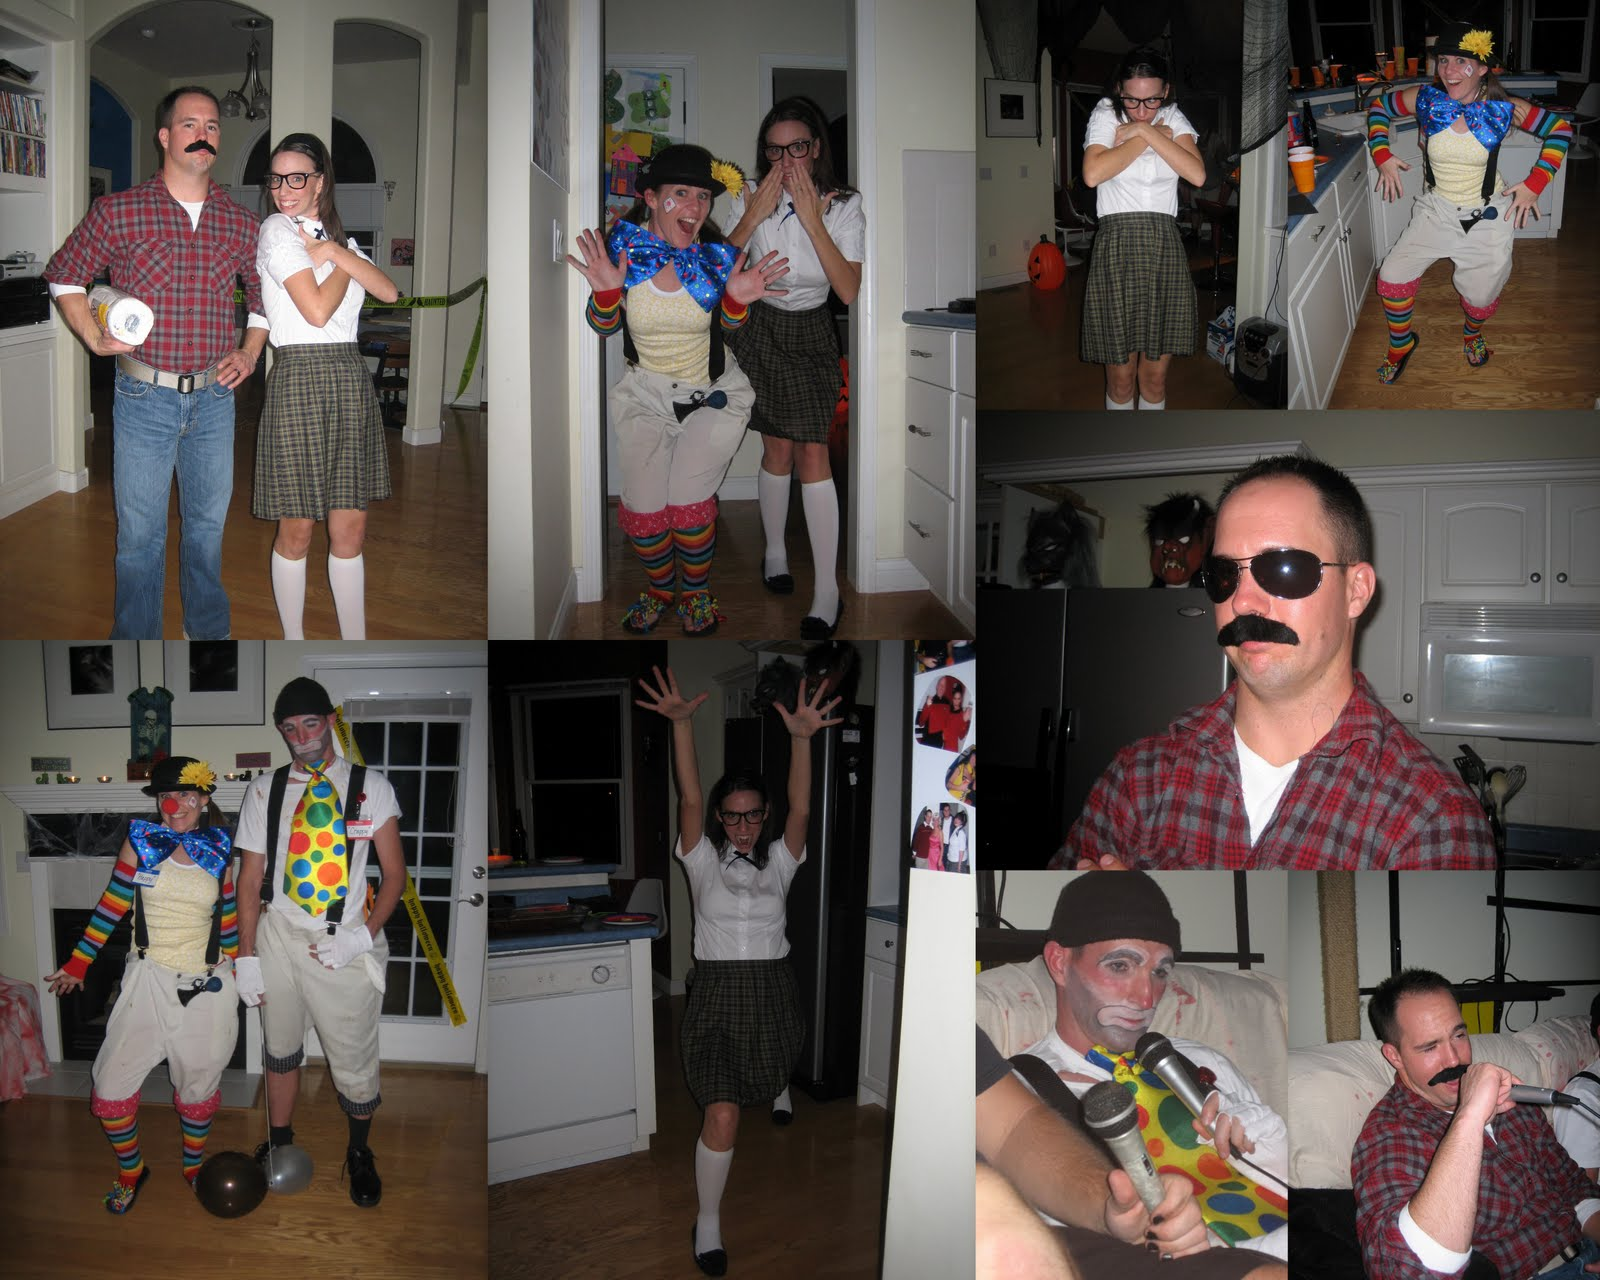 towel costume source abuse report brawny man paper towels never source ...